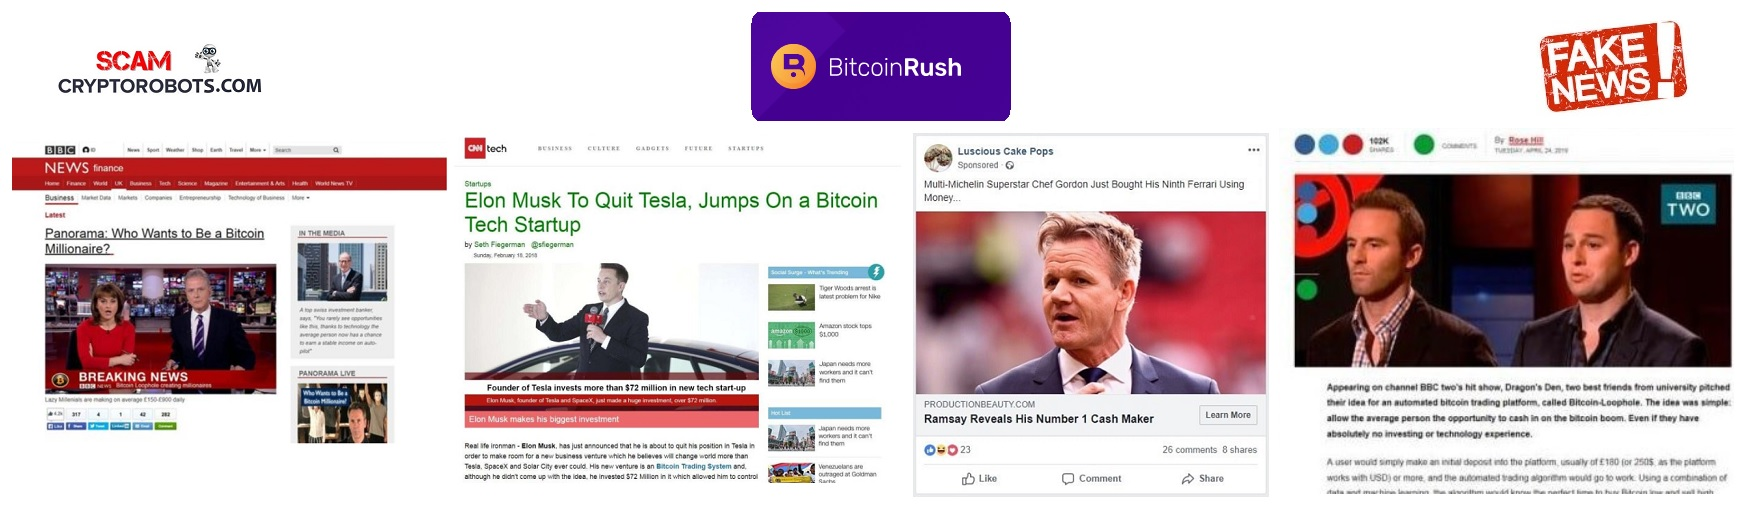 Bitcoin Rush Fake